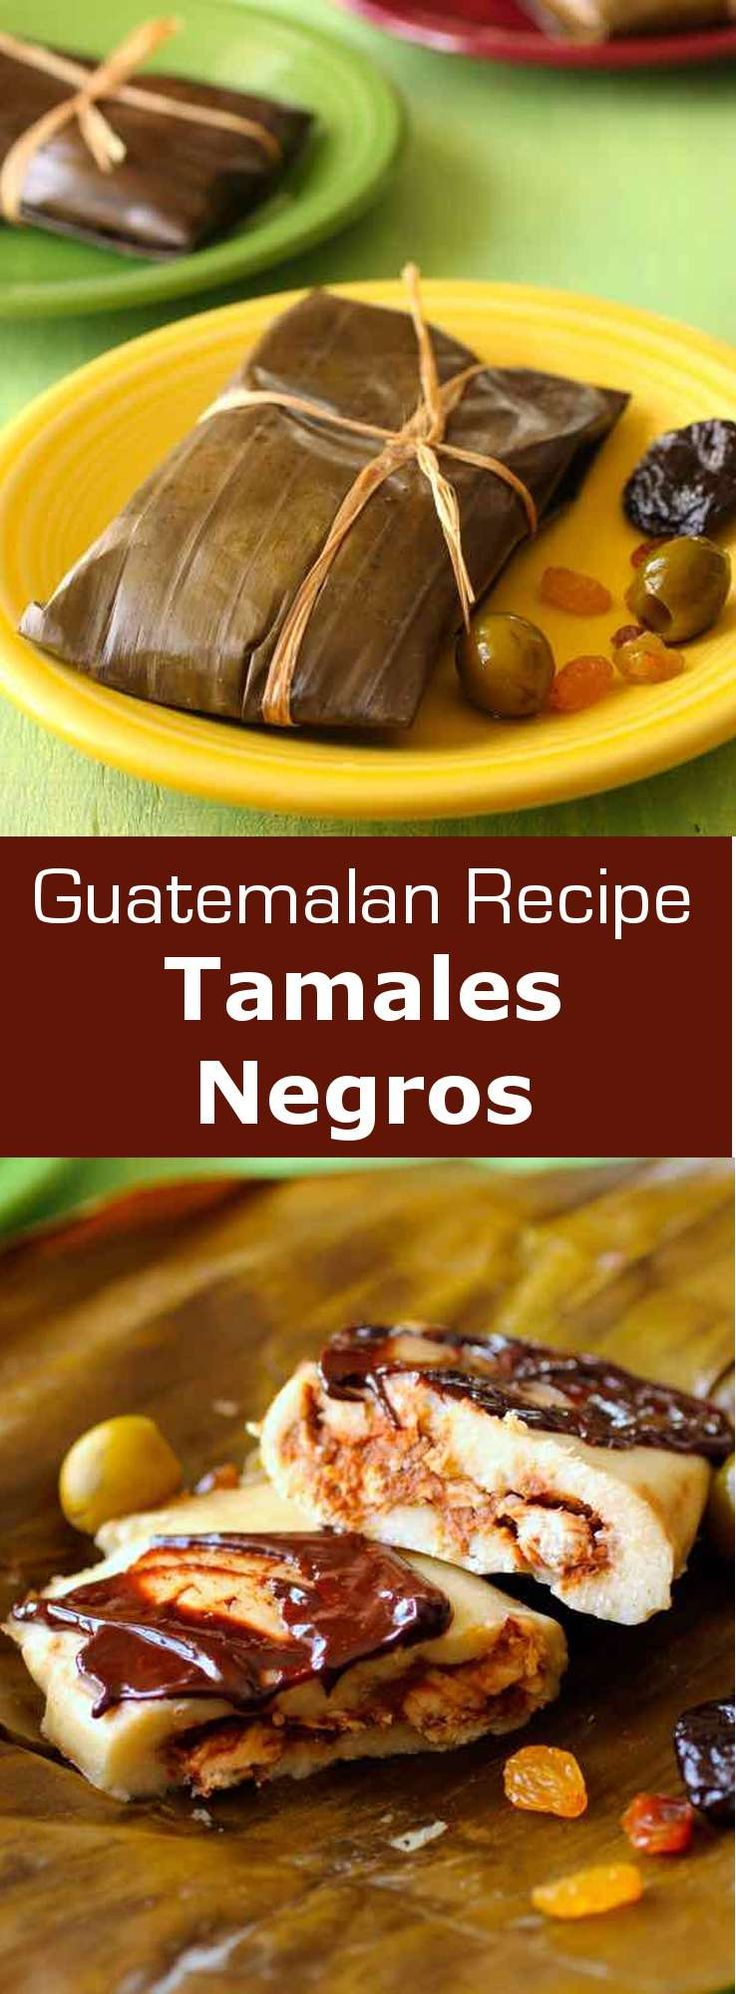 Tamales negros are banana leaf wrapped tamales with mole sauce traditionally prepared for Christmas in Guatemala. #guatemala #latincuisine #196flavors